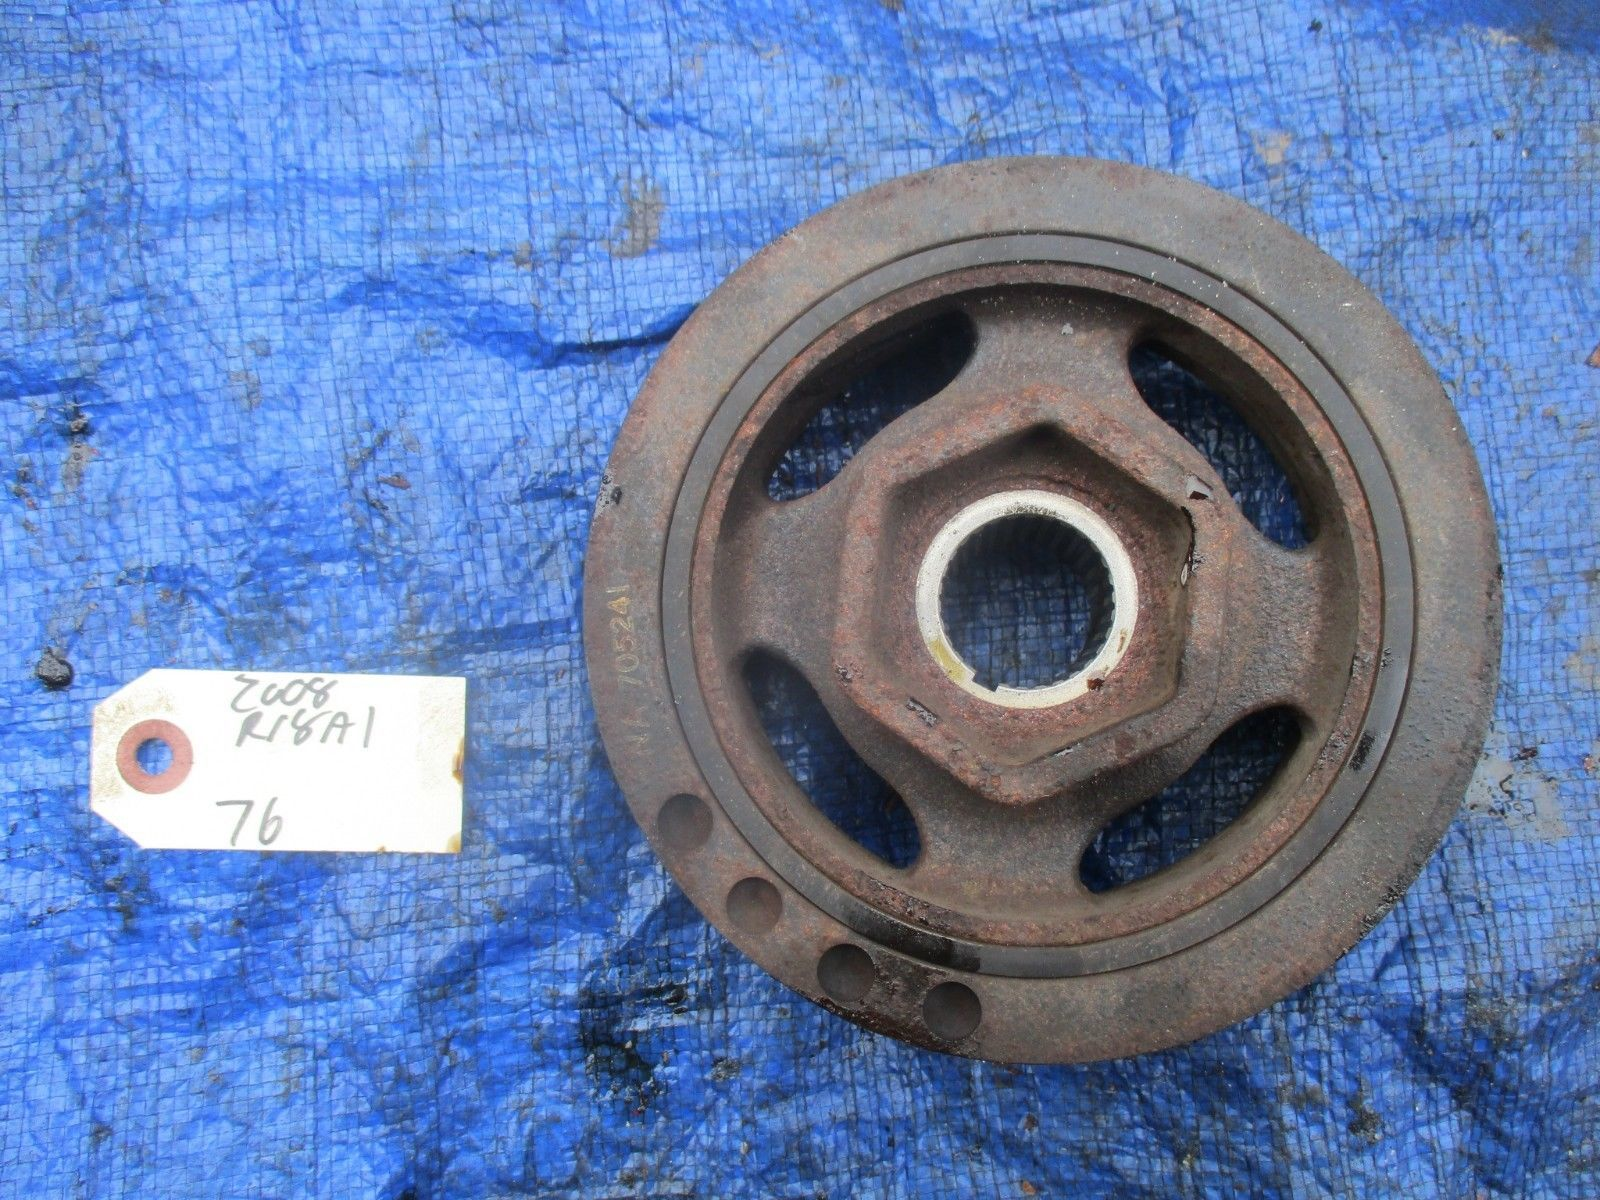 Primary image for 06-09 Honda Civic R18A1 VTEC crankshaft pulley OEM engine motor R18 crank RNA 2